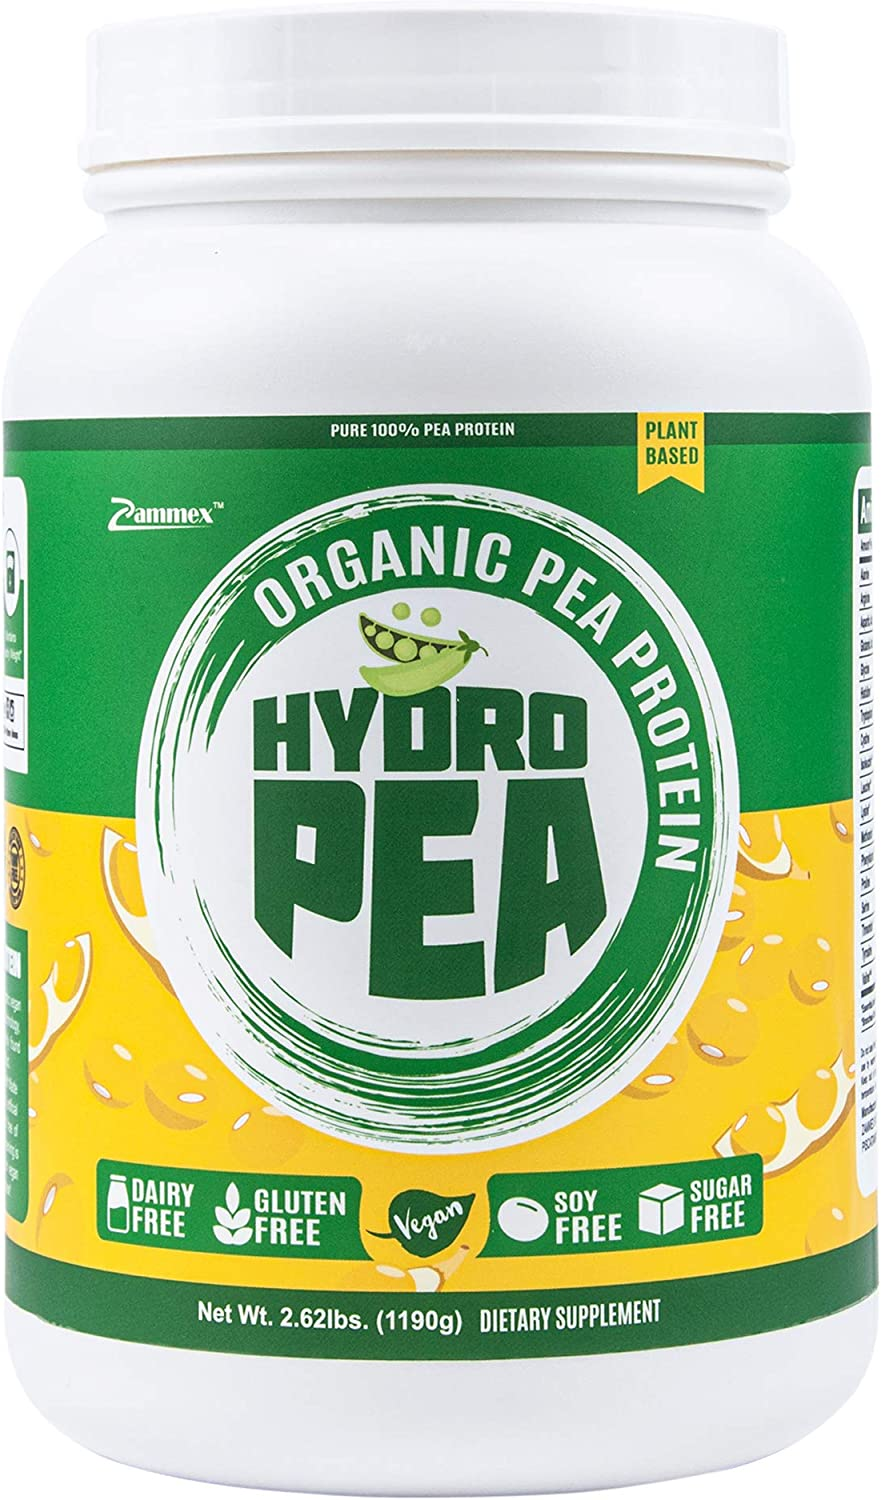 HydroPea - 100% Pure Organic Hydrolyzed Pea Protein Powder - Easy to Digest, Plant Based Vegan Protein, Natural Unflavored, Dairy Free, Gluten Free, Soy Free, Sugar Free, Non-GMO with BCAA 2.62lb